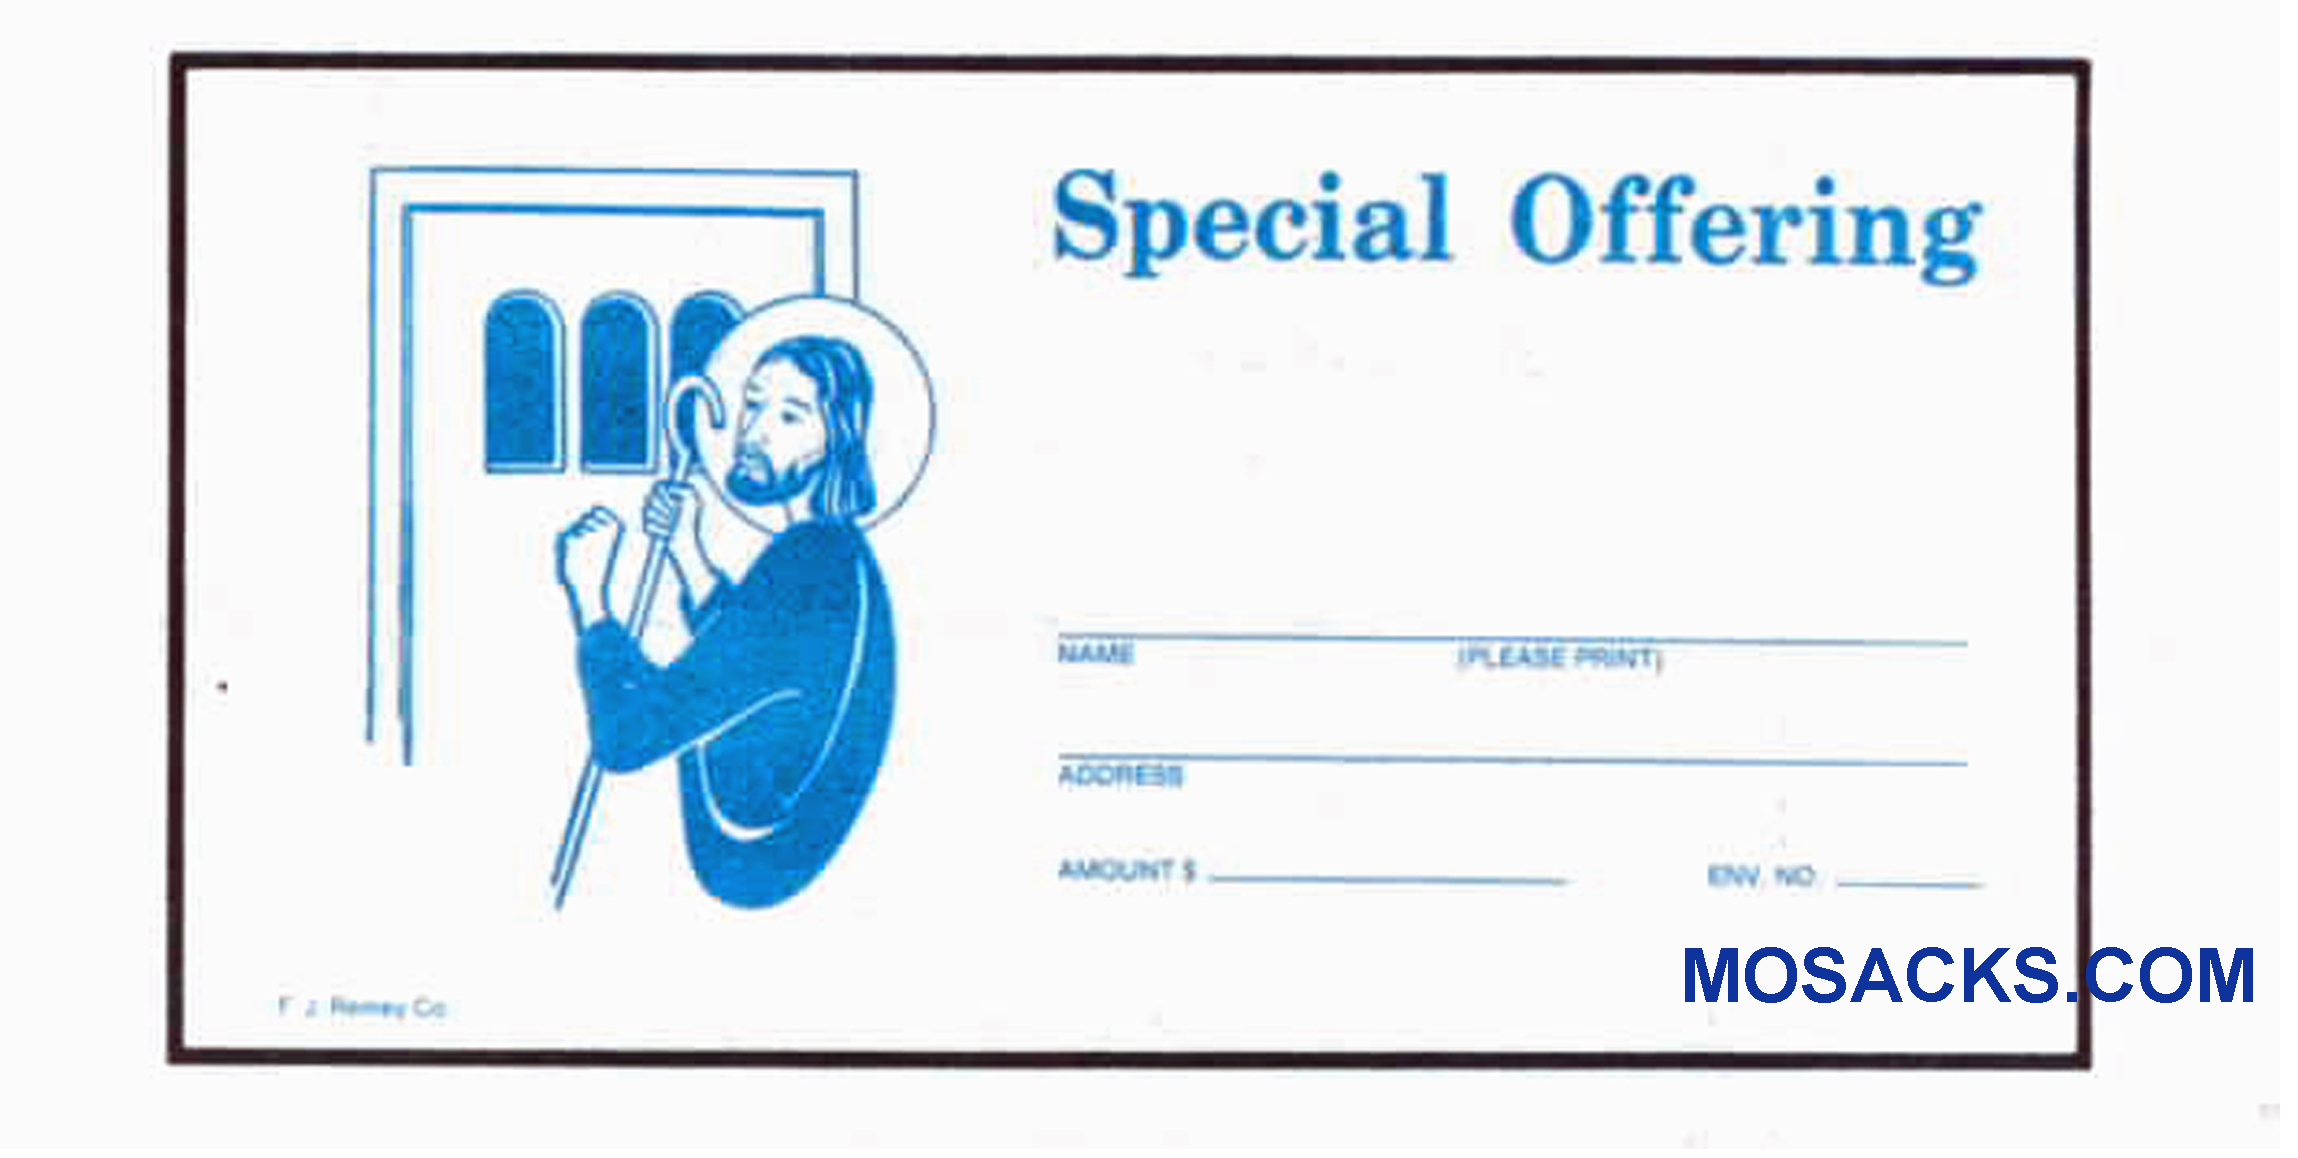 Special Offering - Church Offering Envelope 6-1/4 x 3-1/8 #304-378